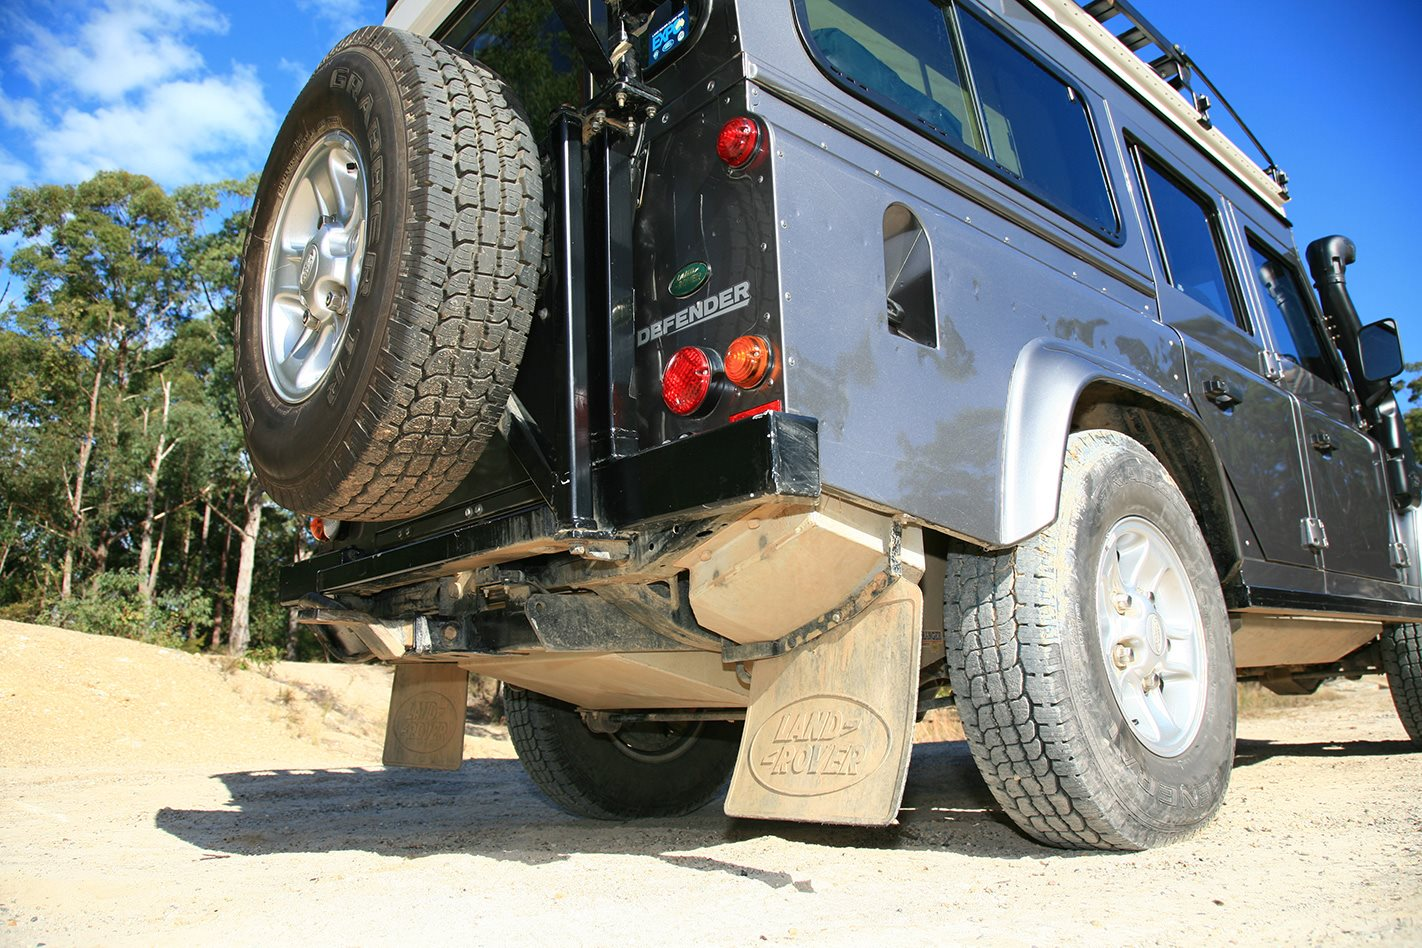 Land Rover Defender custom camper mud flaps.jpg